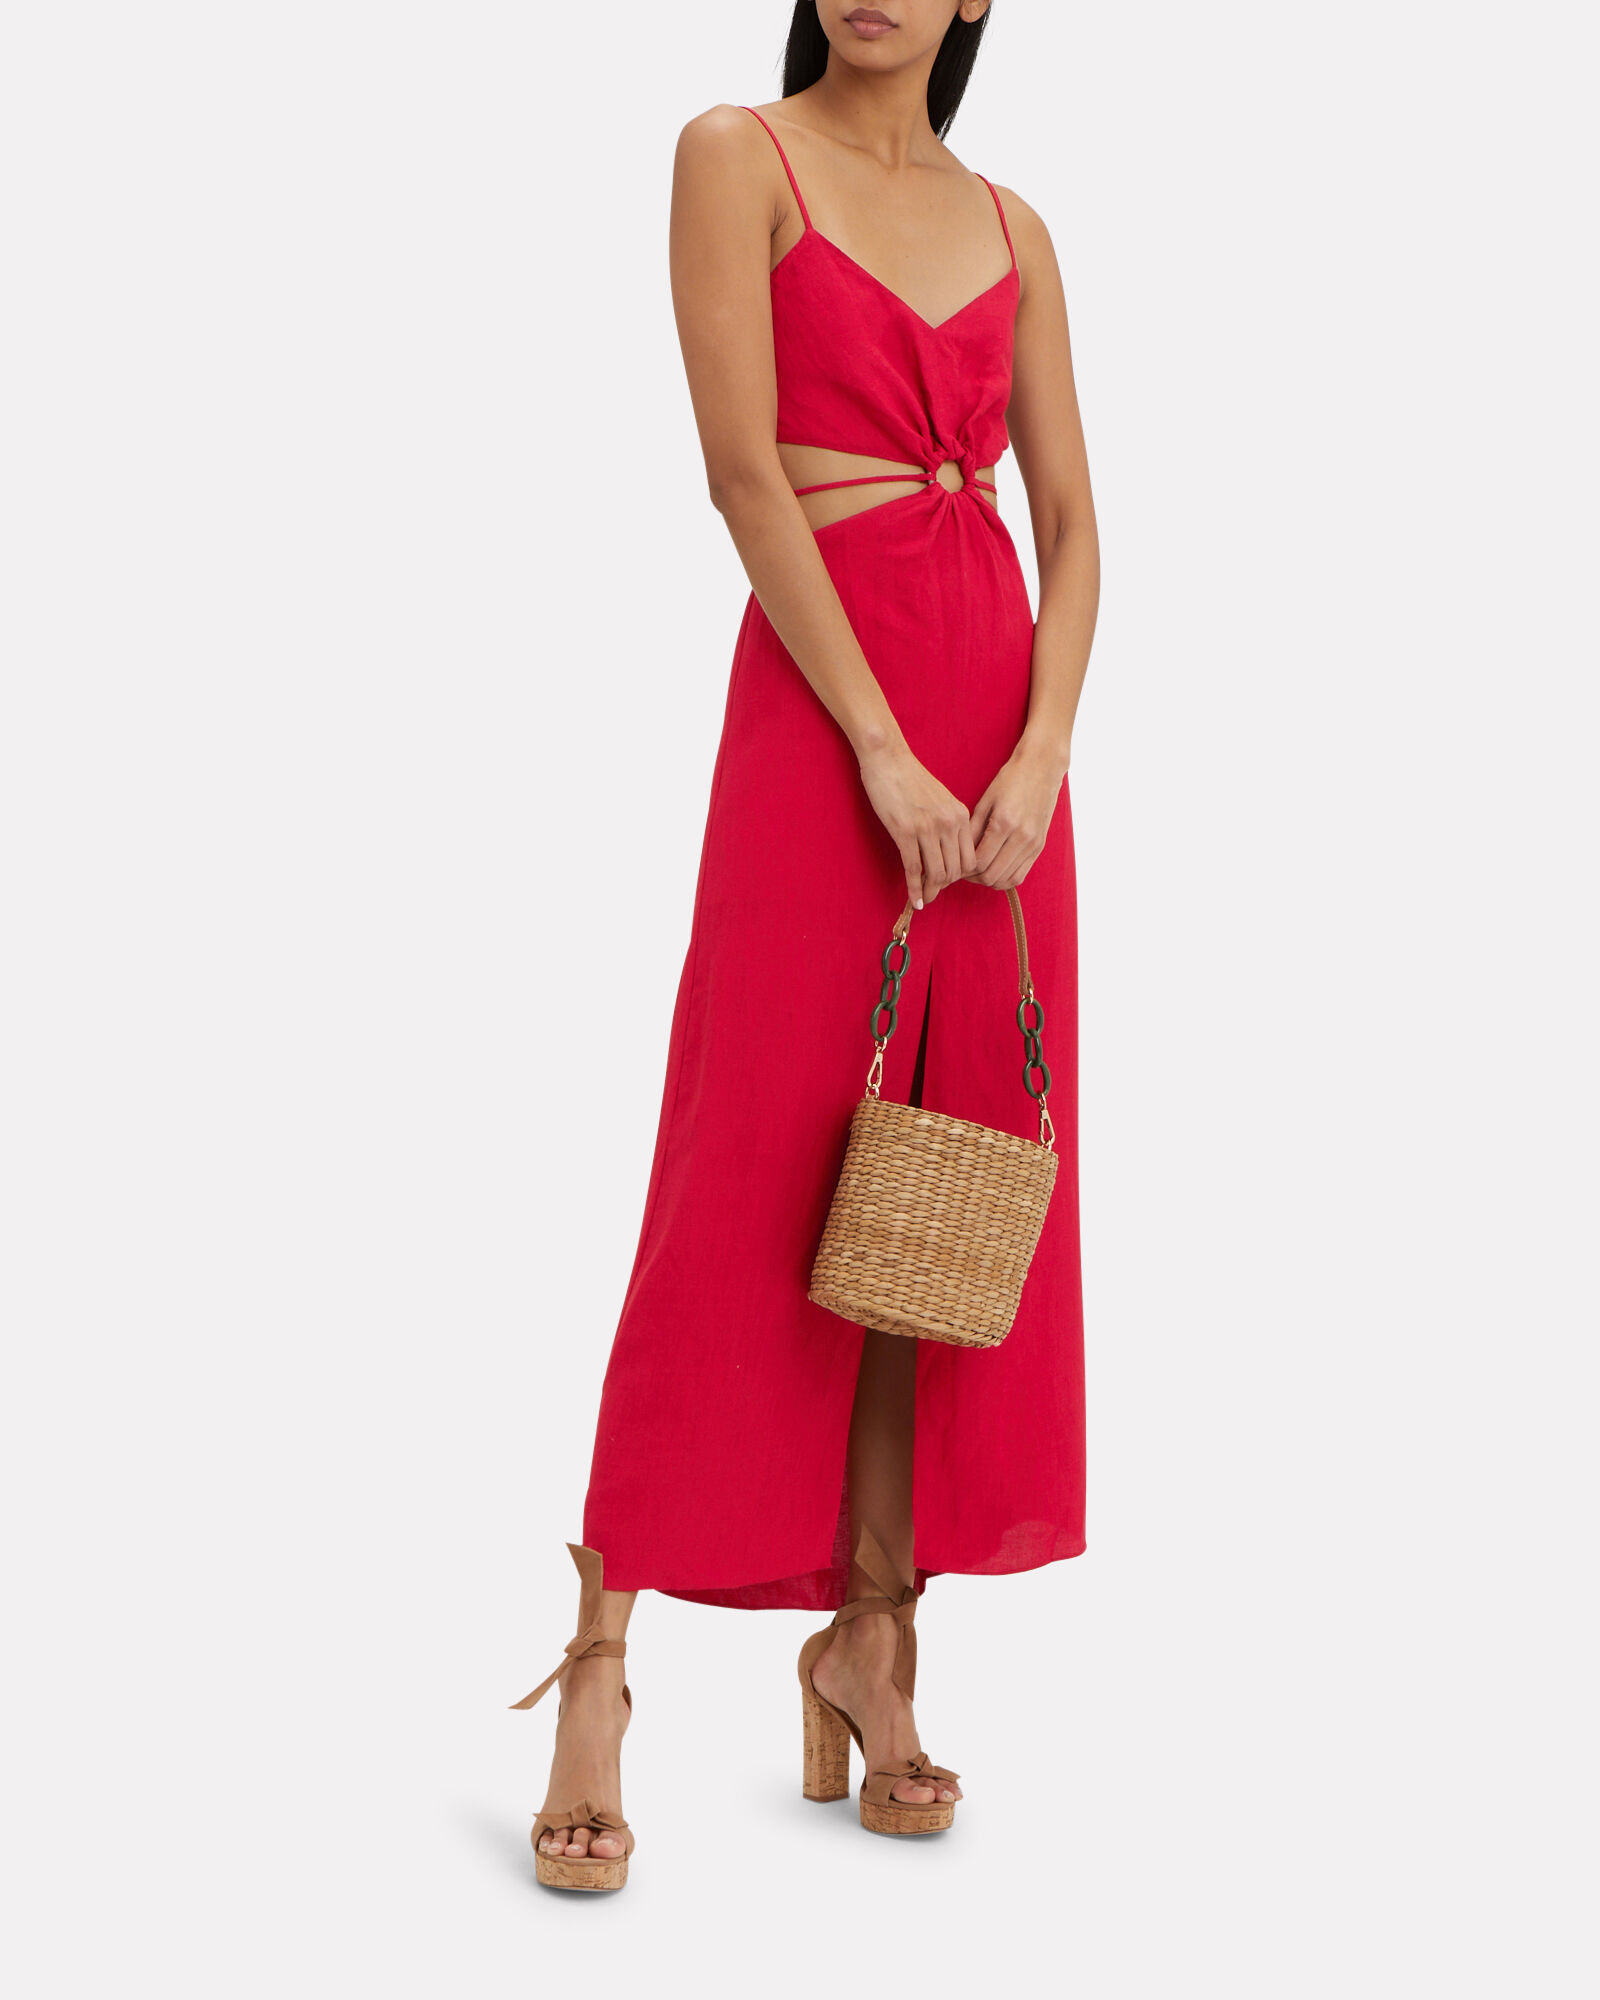 Linen O-Ring Cut Out Dress, RED, hi-res